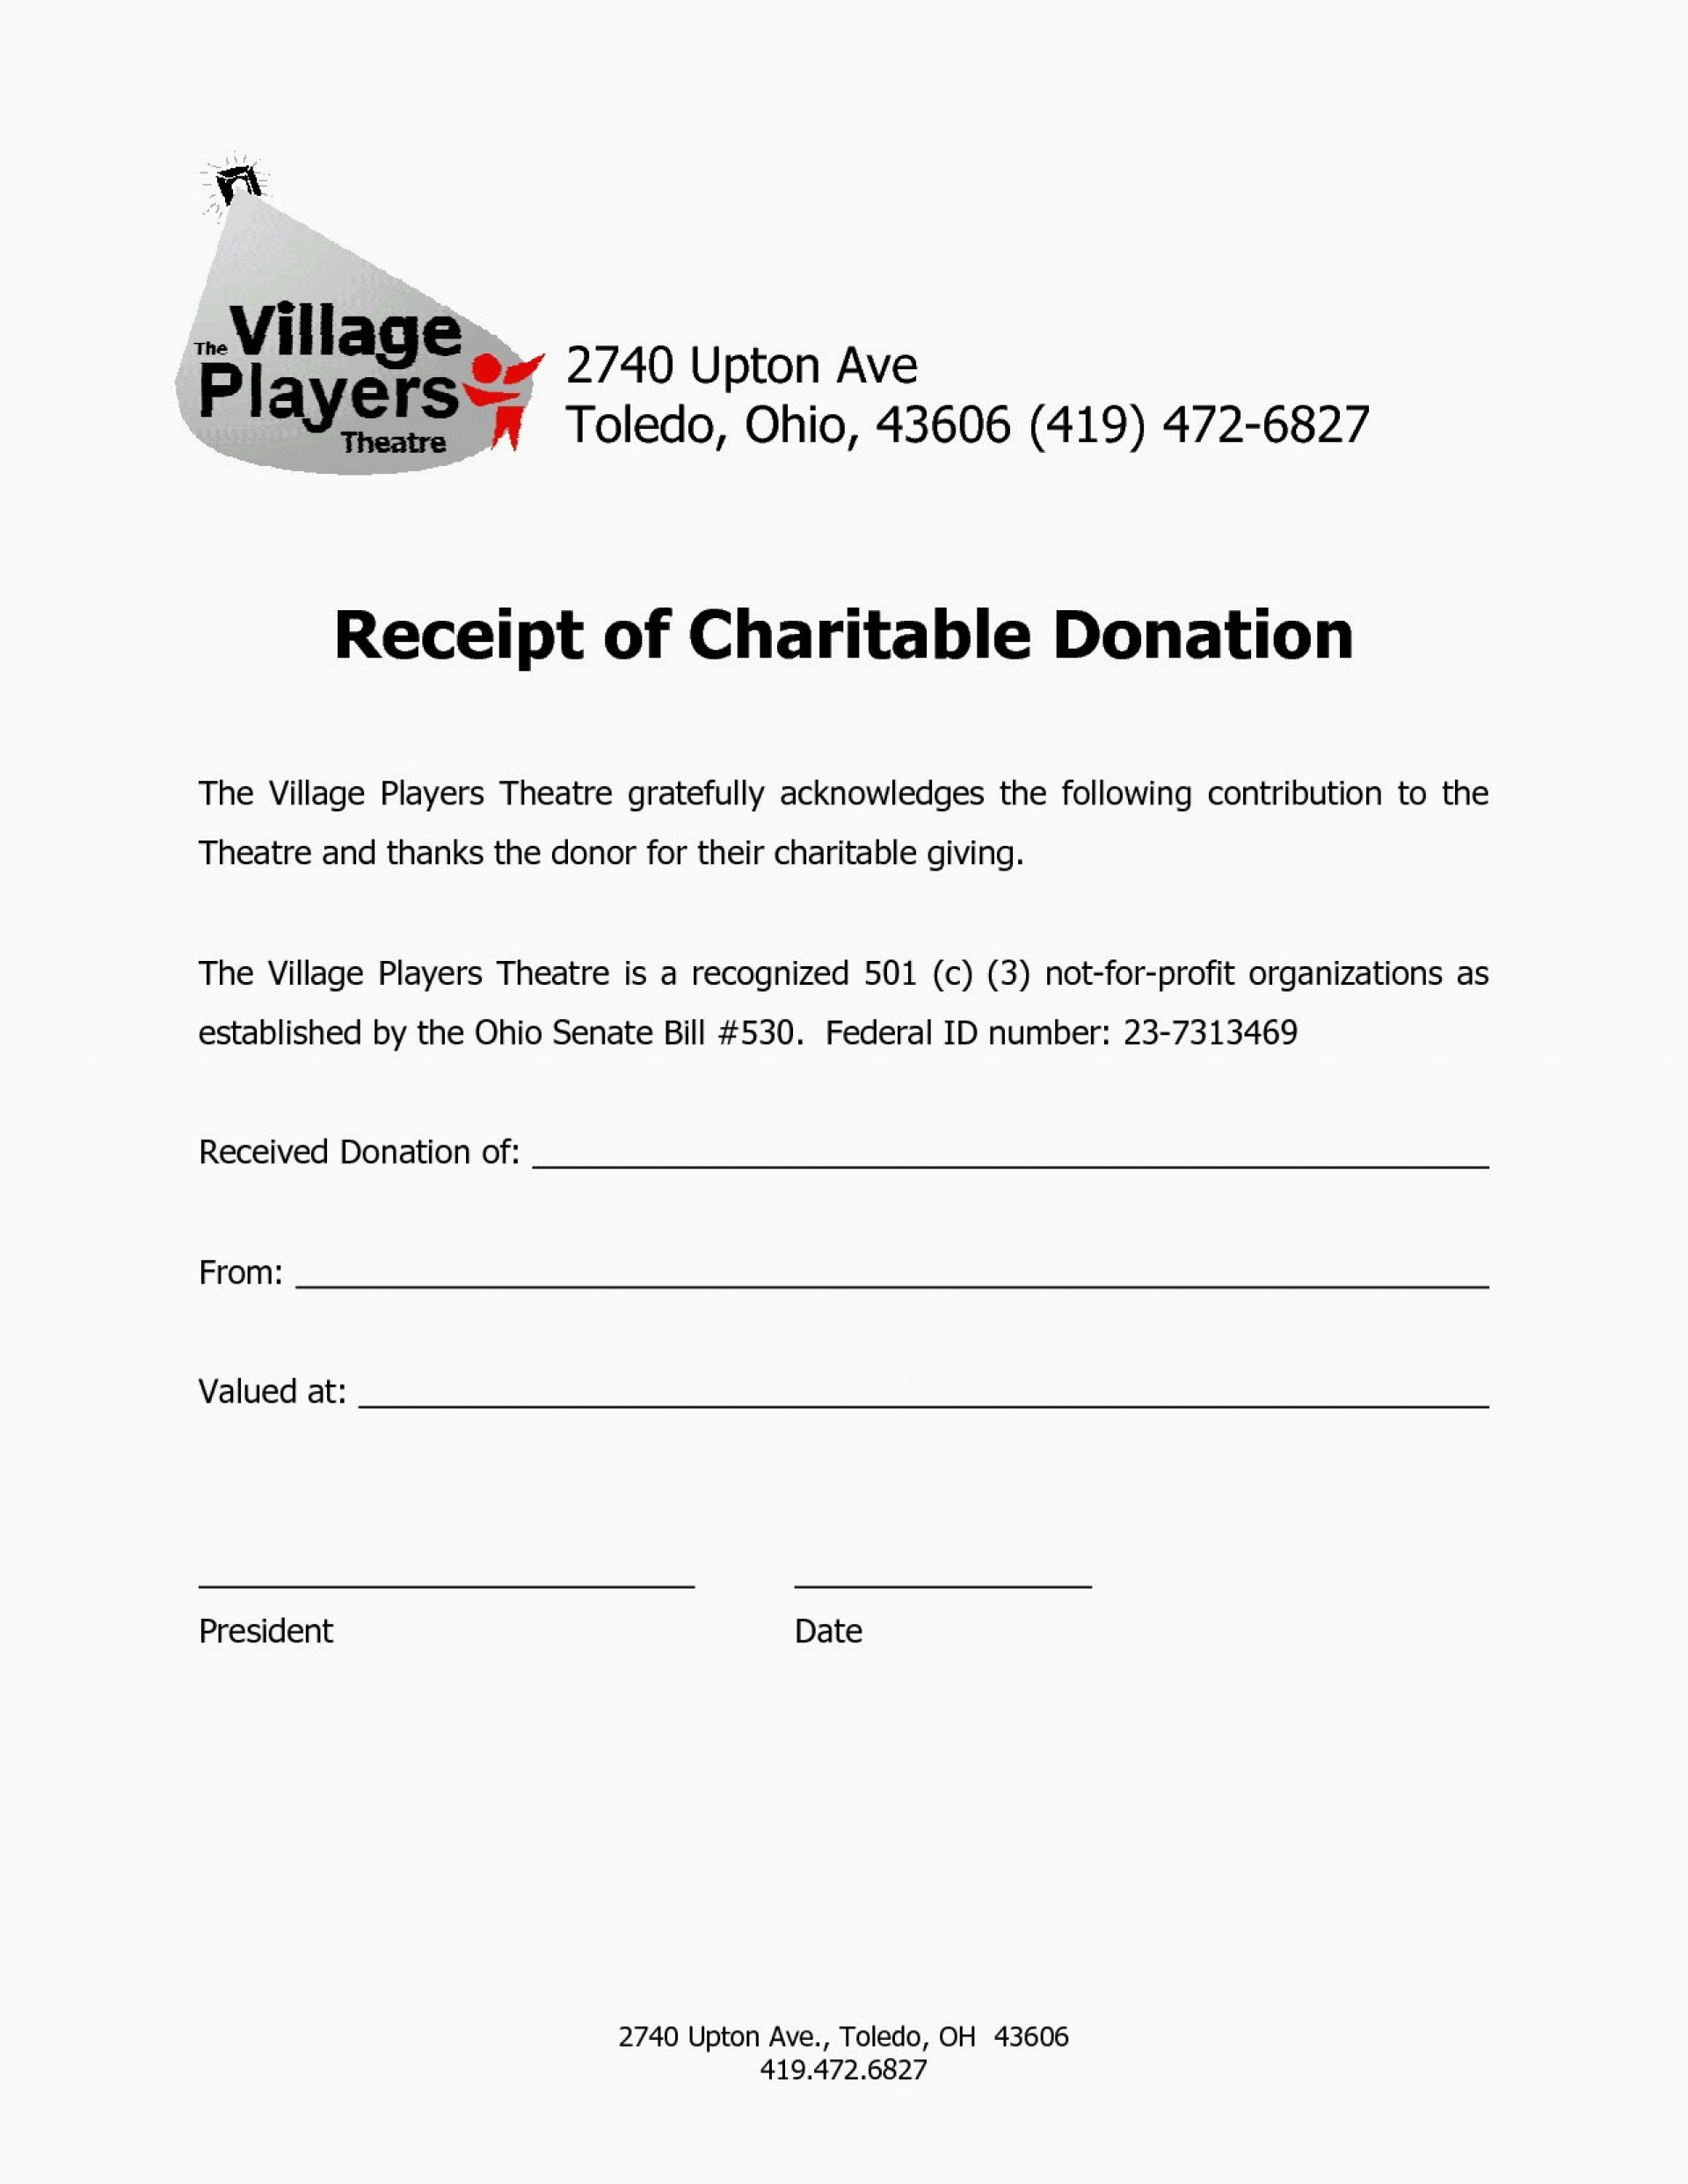 Non Profit Charitable Donation Letter Template